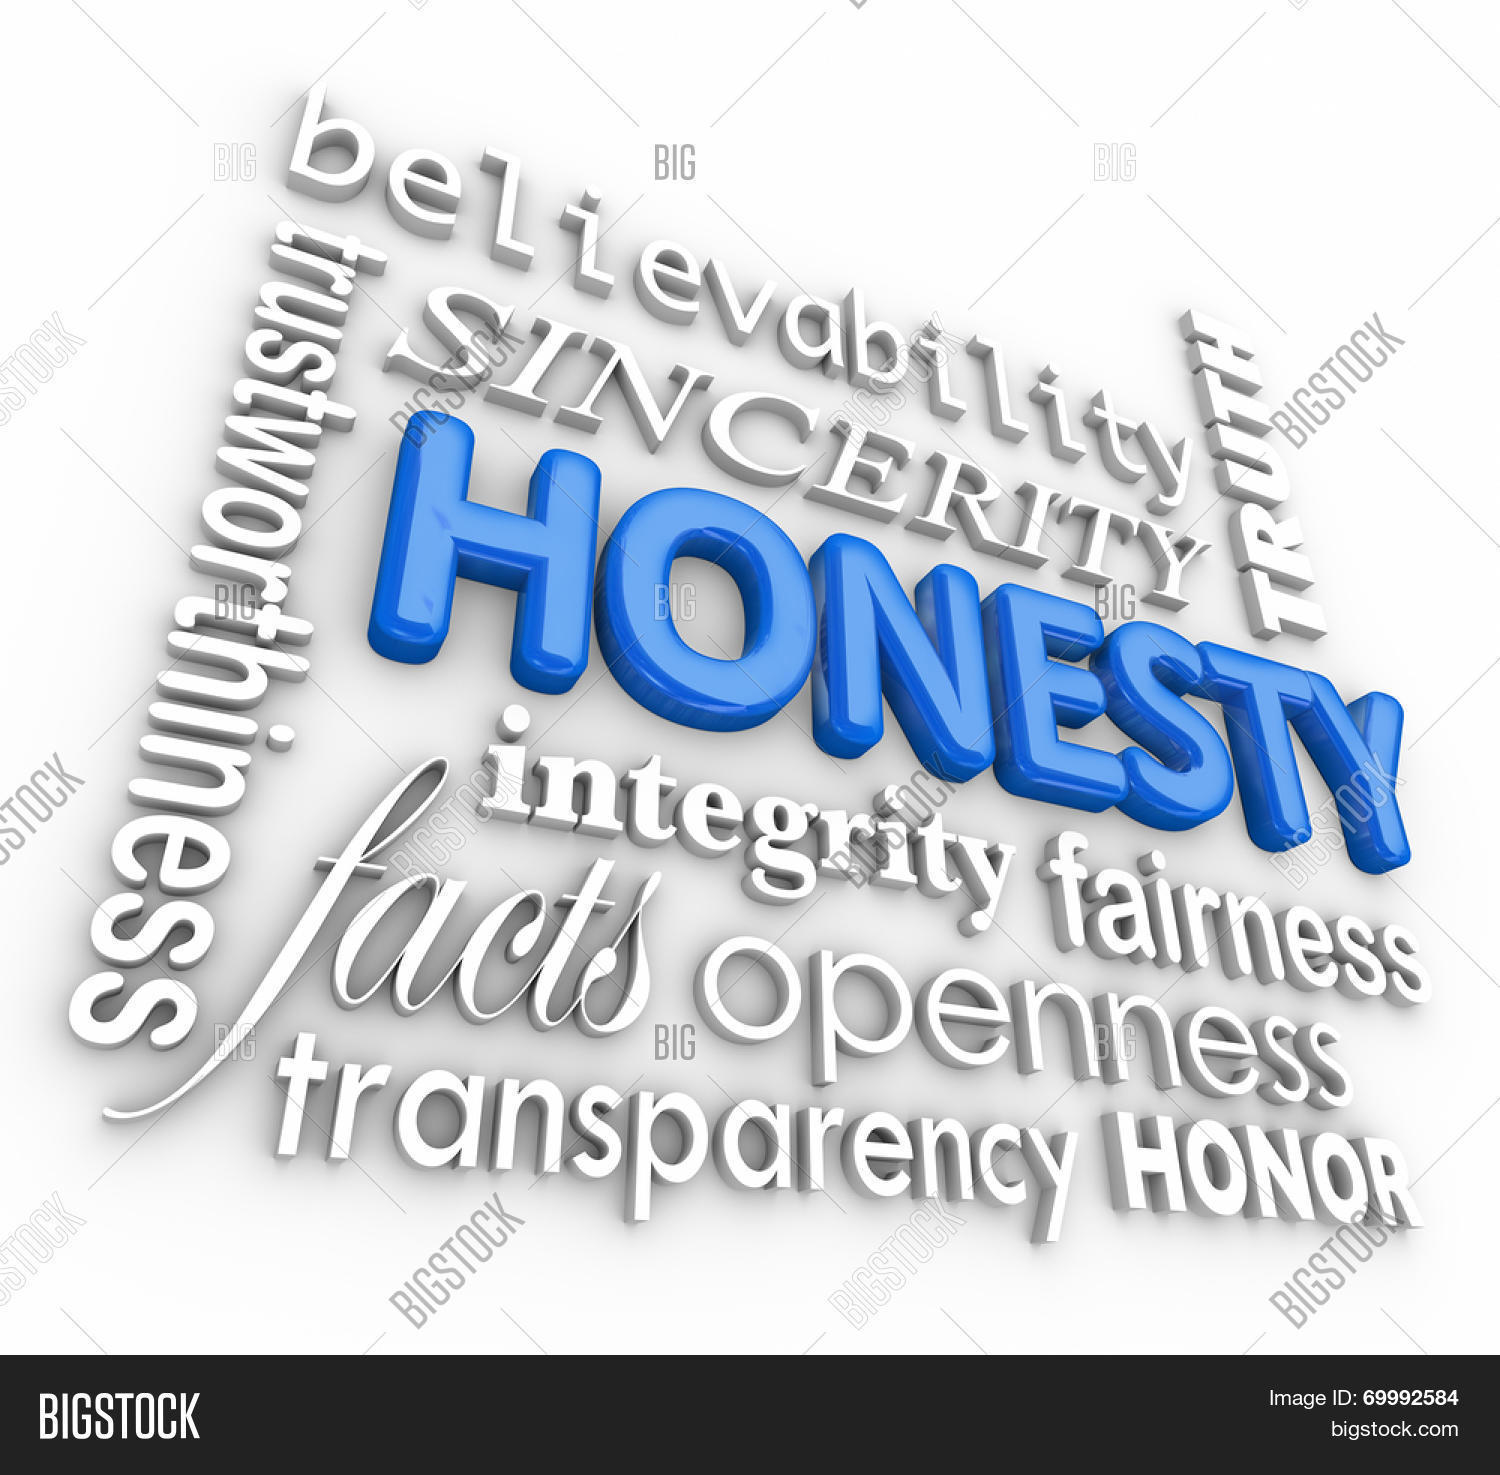 Image result for honesty and transparency